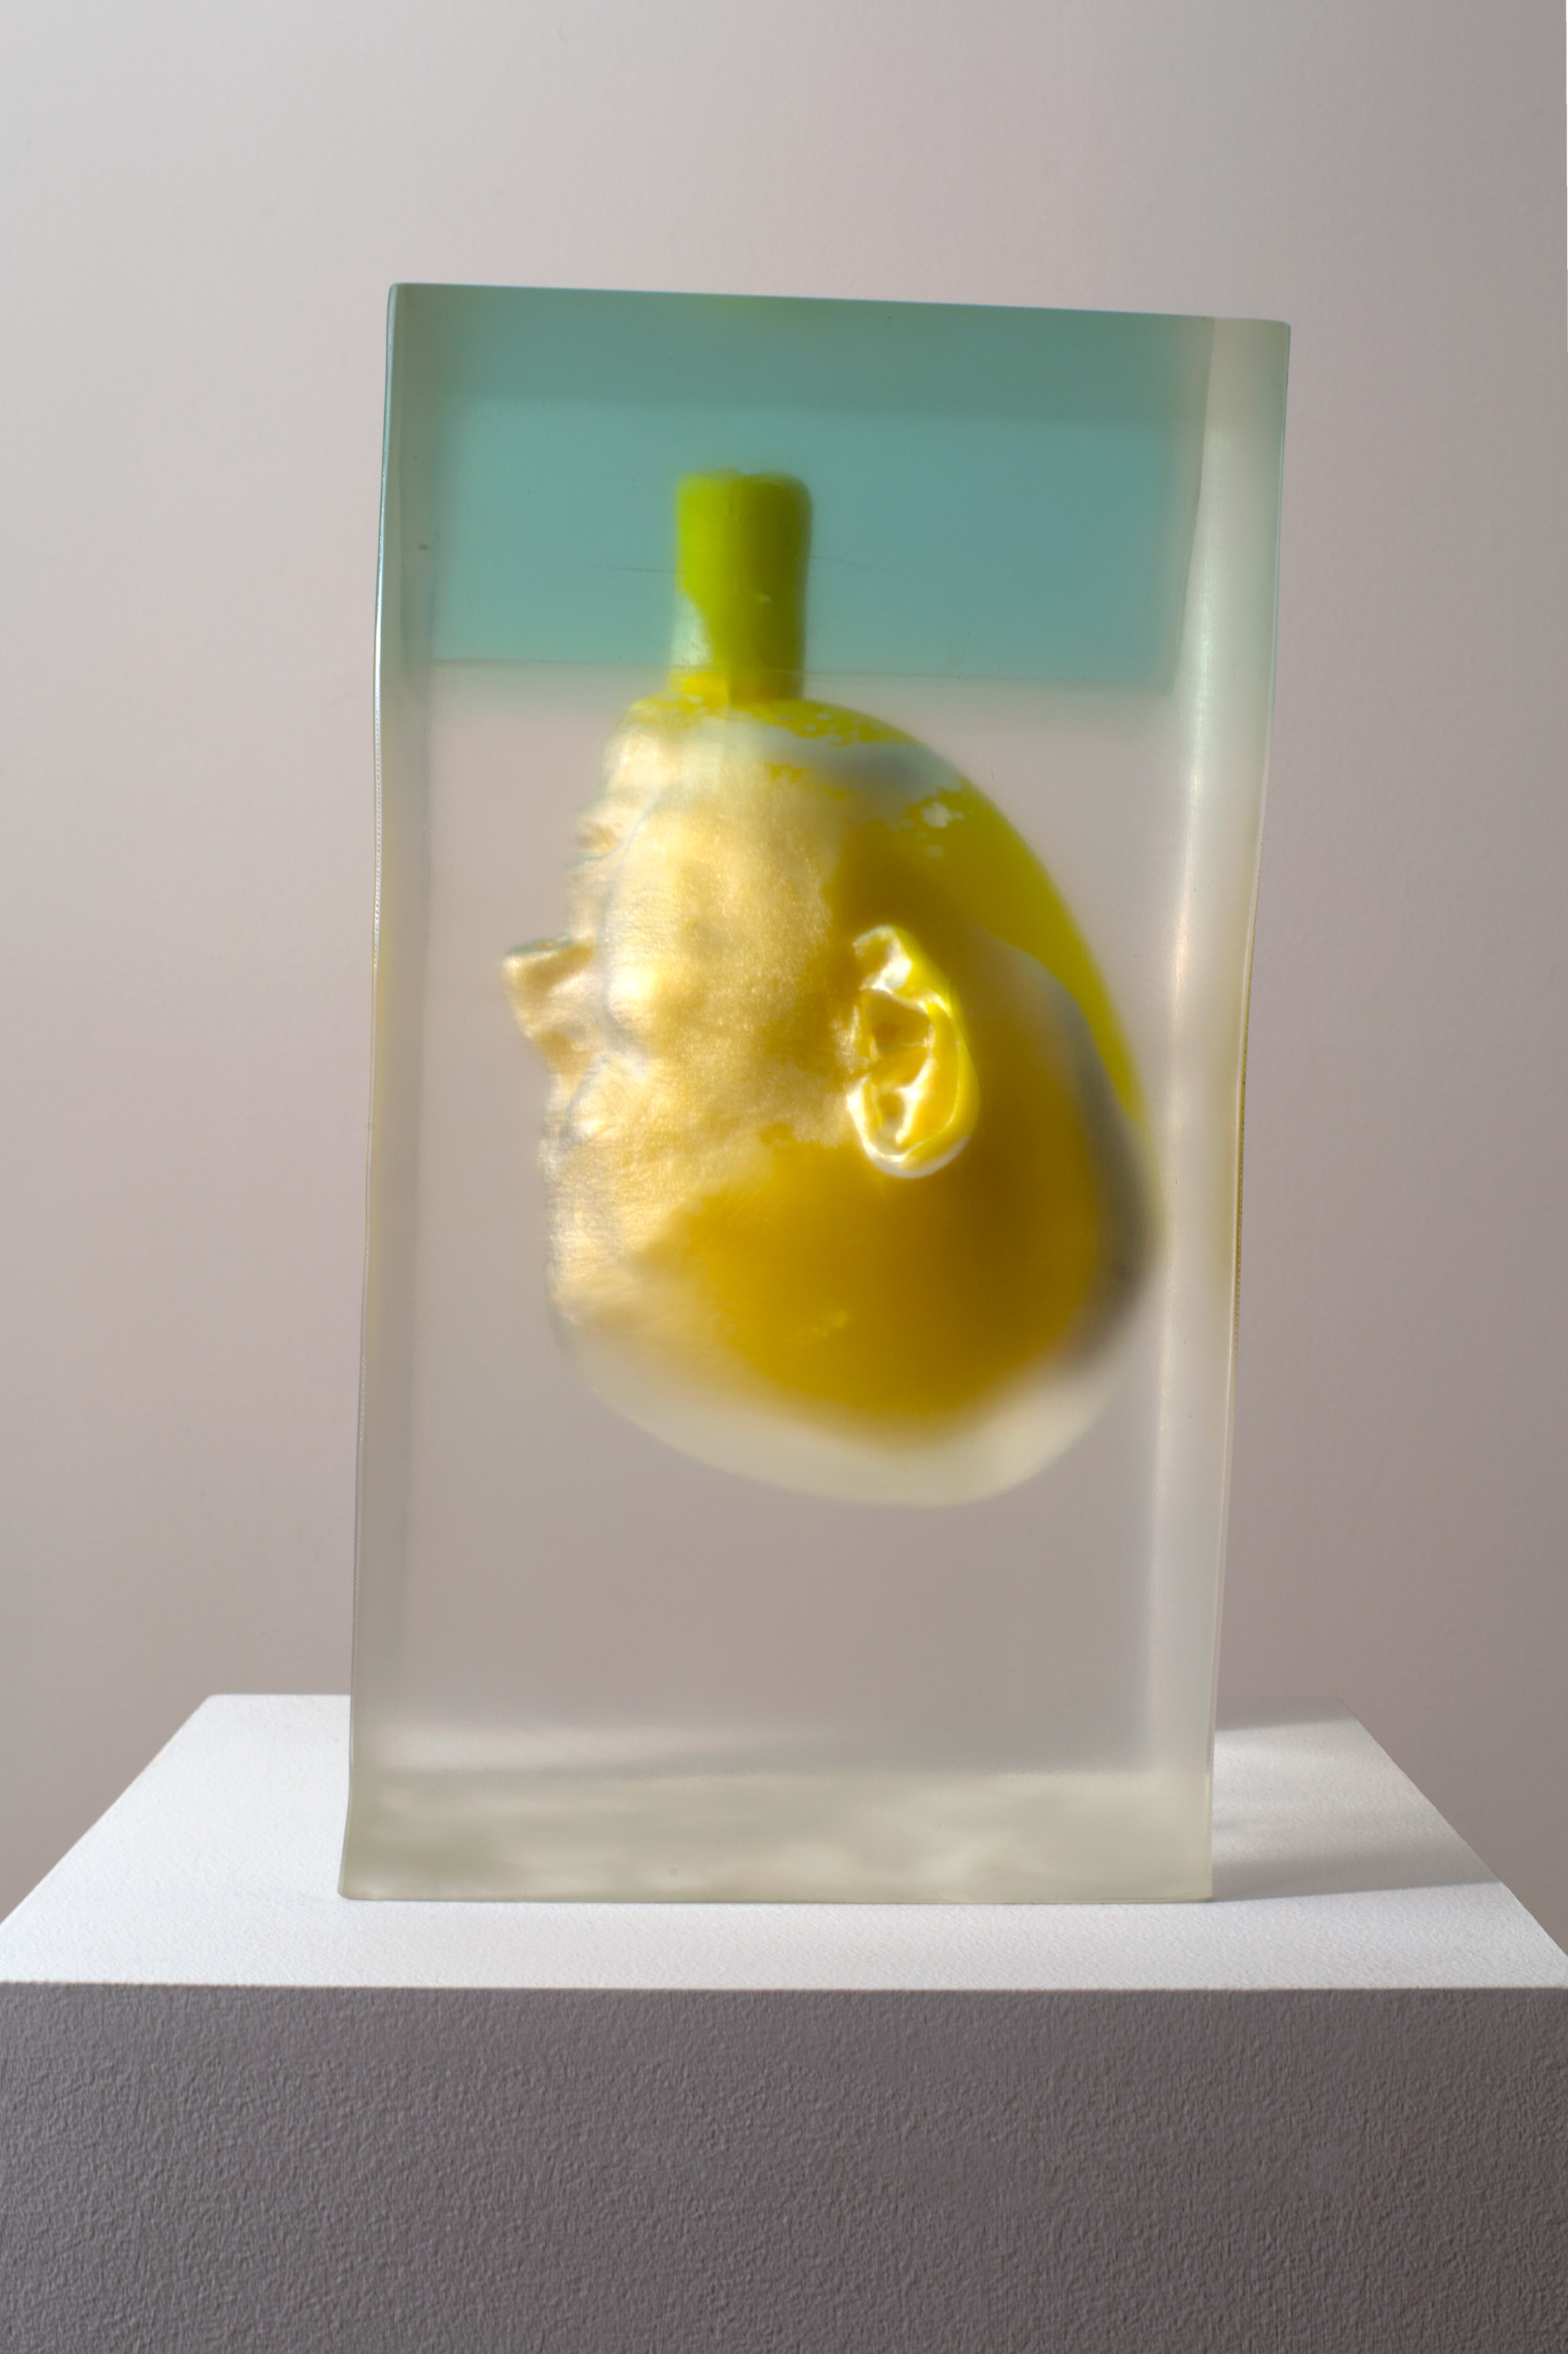 Rona Pondick 2018 Pigmented resin and acrylic 15 5/8 x 8 5/8 x 8 3/4 inches (39.7 x 21.9 x 22.2 cm) 2018 Marc Straus Gallery